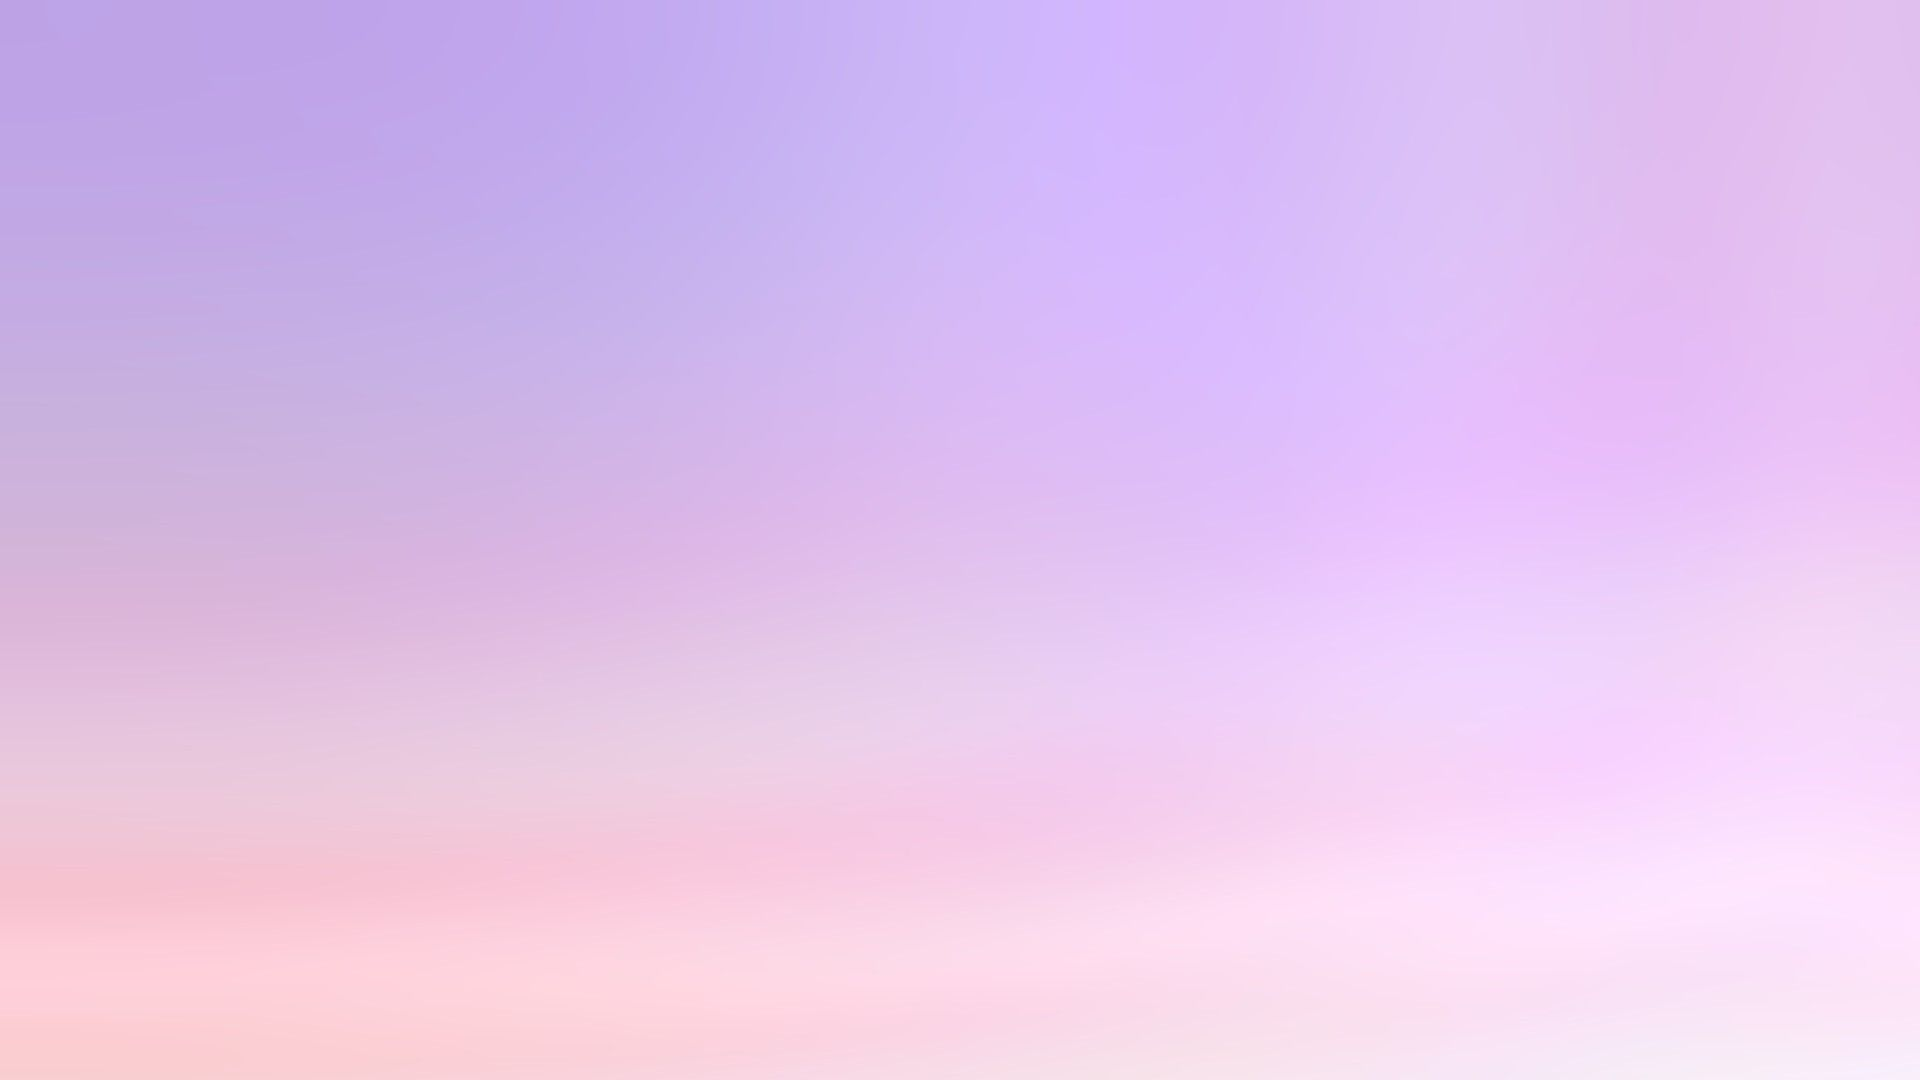 Pastels Aesthetic Computer Wallpapers Top Free Pastels